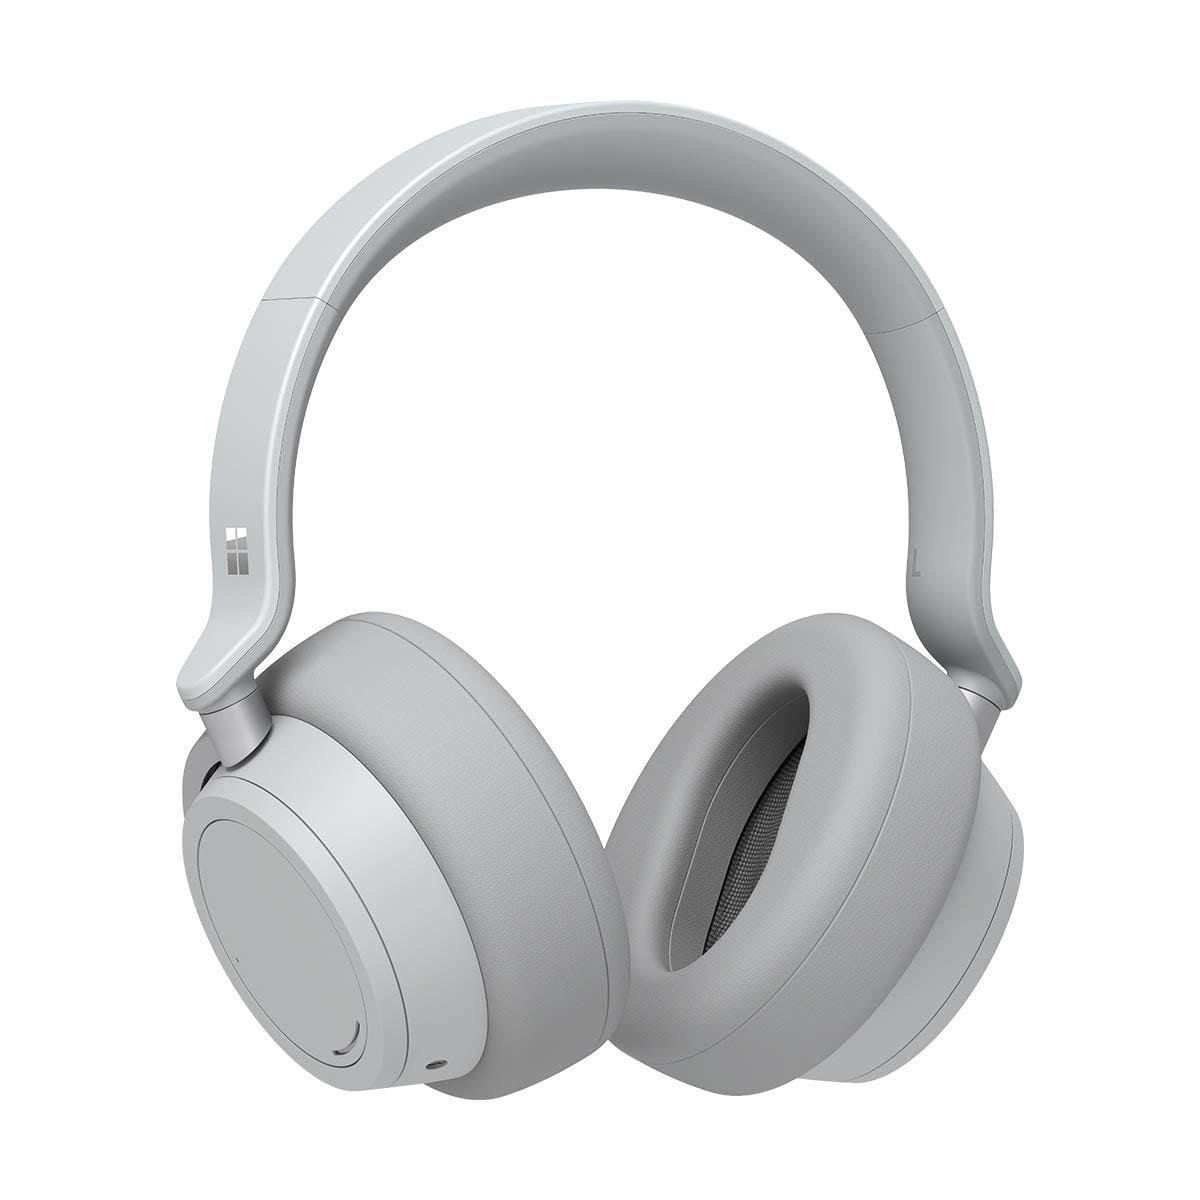 386c79228bb Prime Members: Microsoft Surface Wireless Noise Canceling Headphones ...